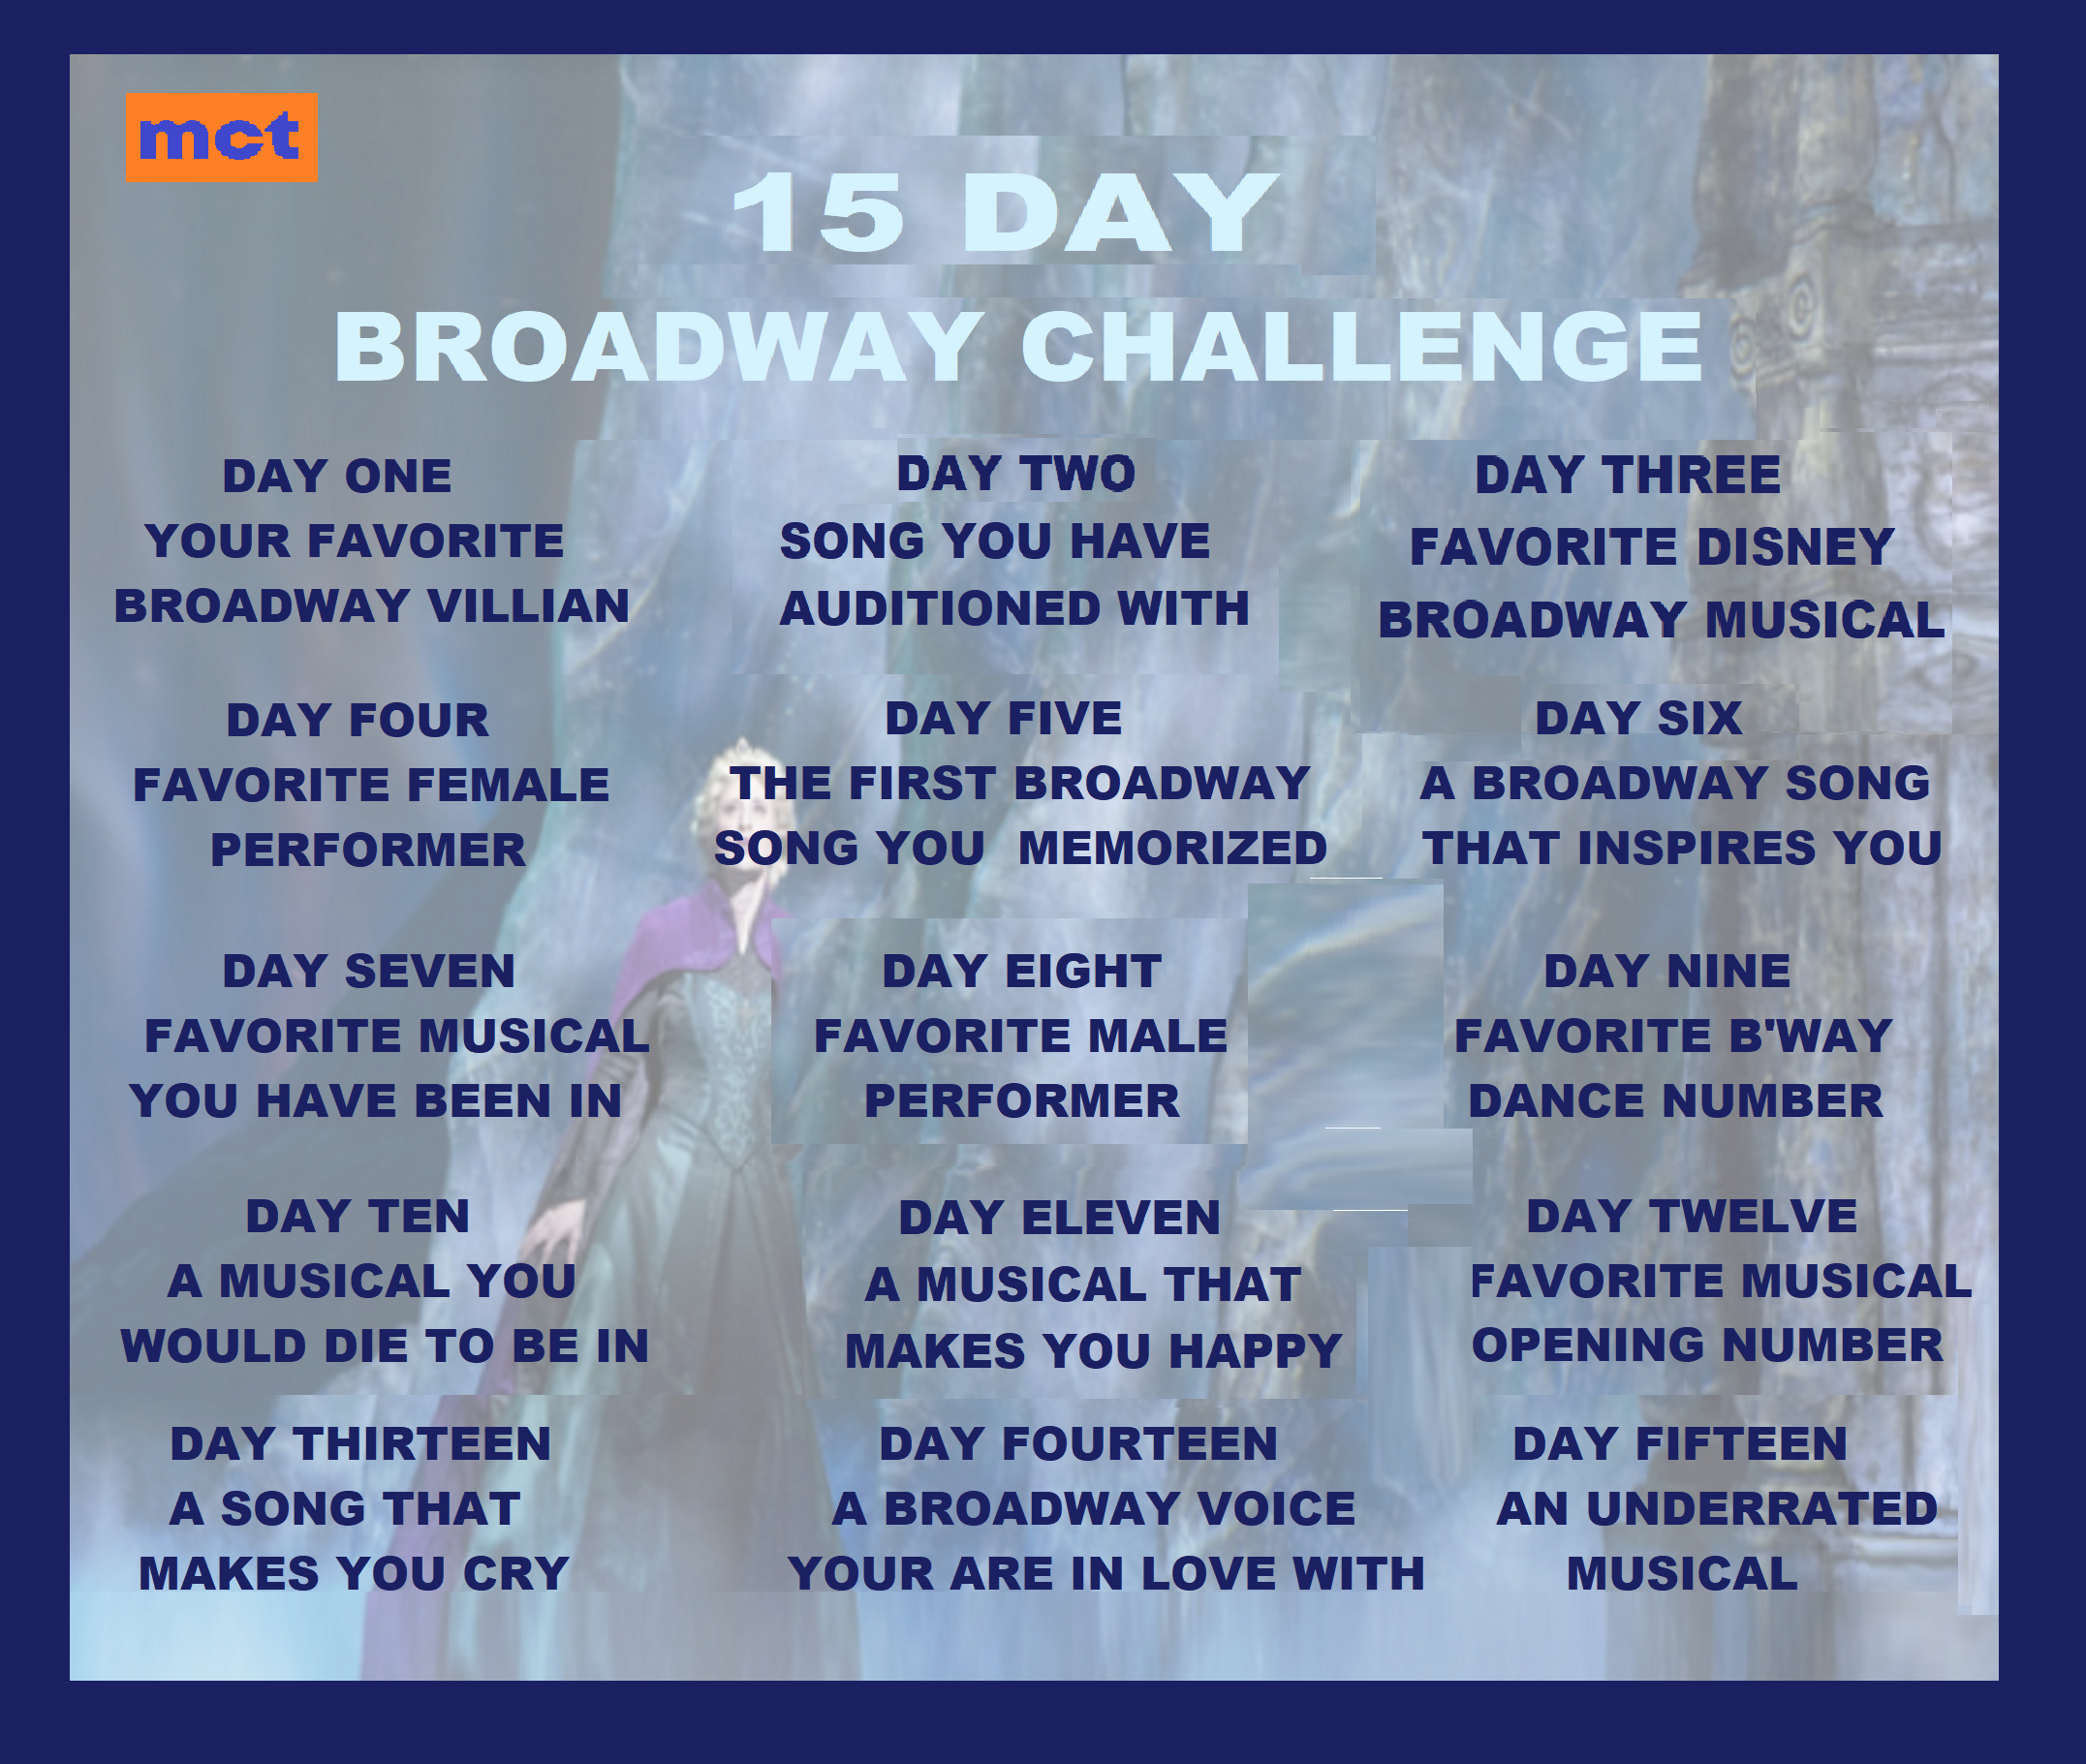 BROADWAY CHALLENGE TWO